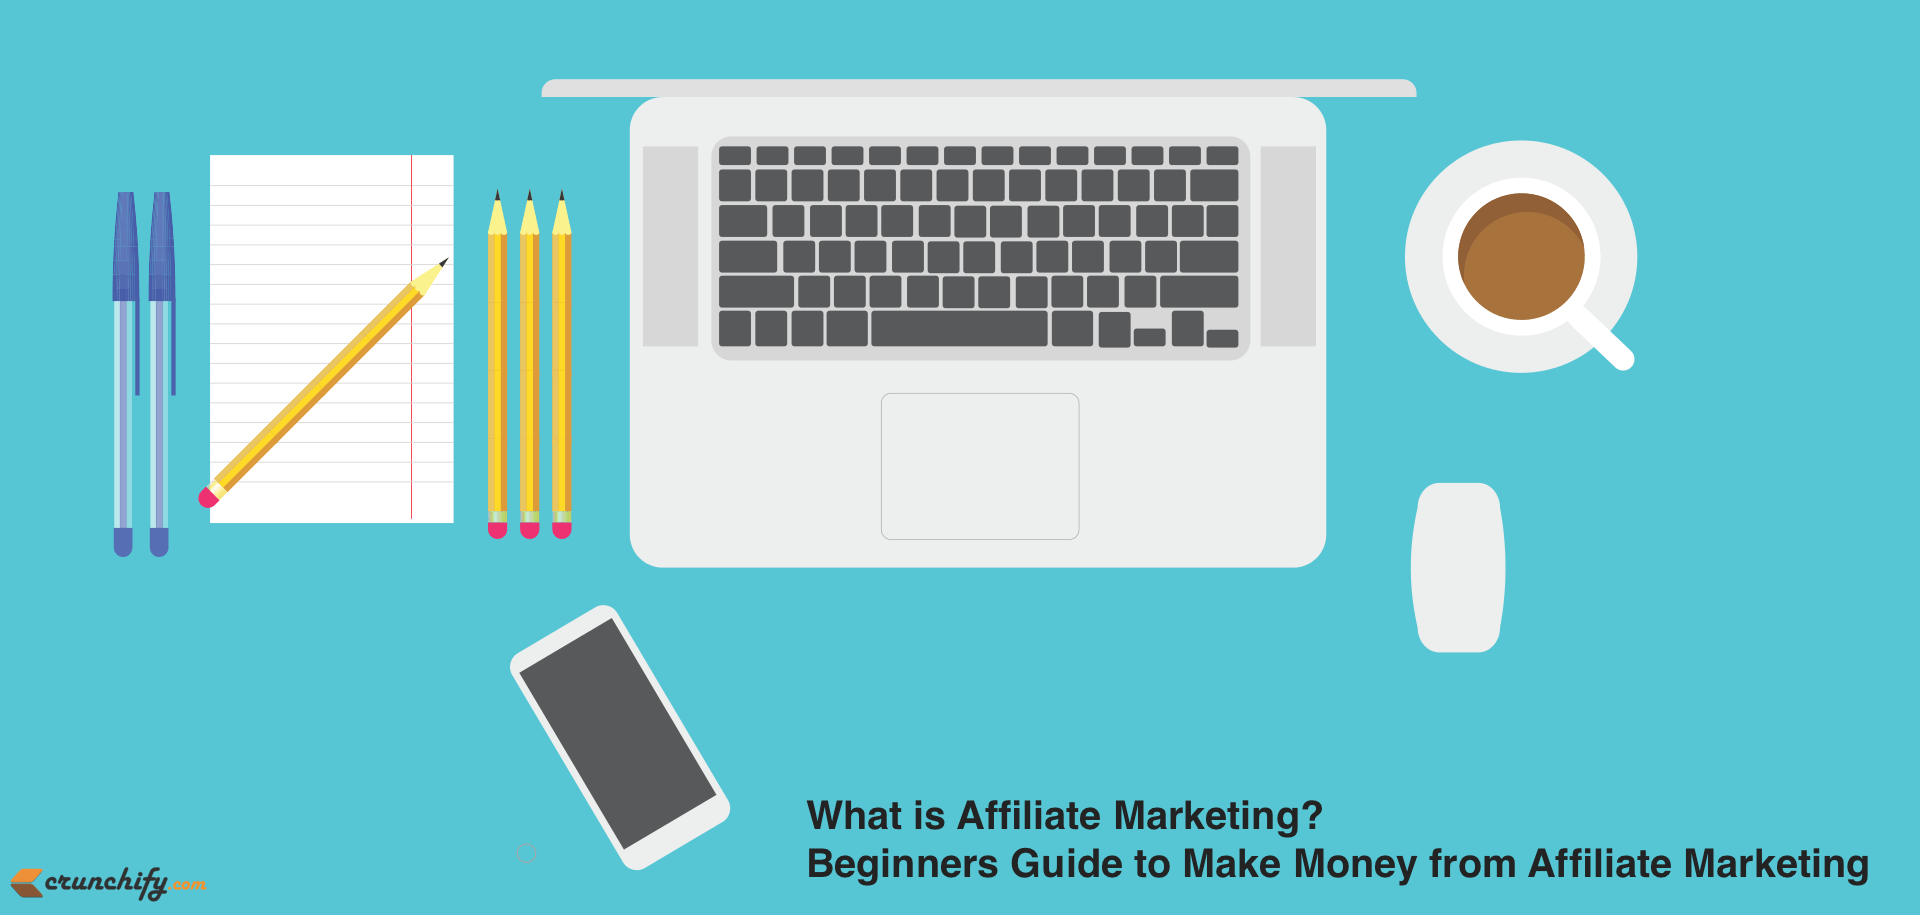 What is Affiliate Marketing - Beginners Guide to Make Money from Affiliate Marketing